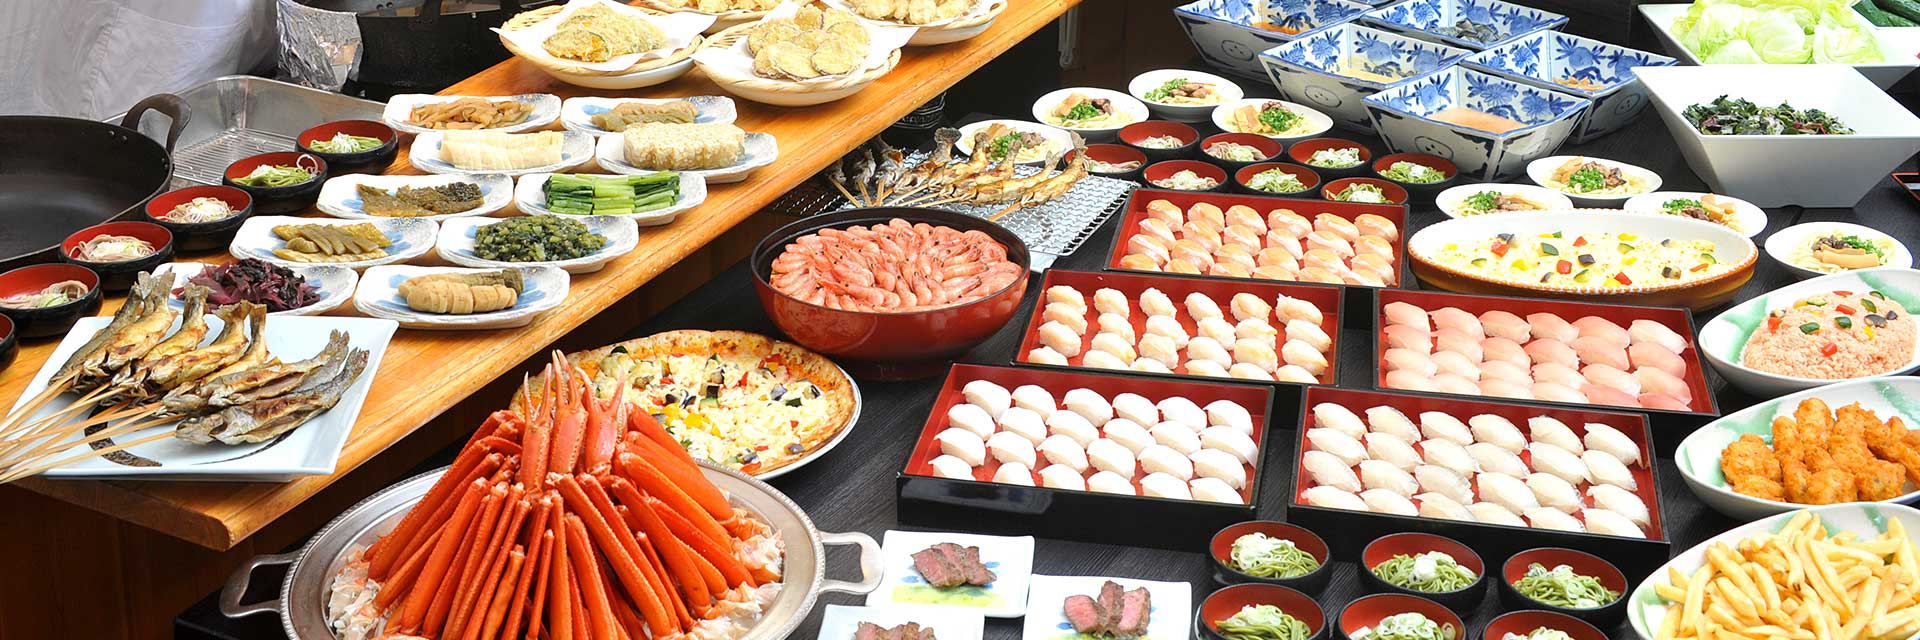 A spread of more than 70 dishes for breakfast and dinnerThe only buffet dinner option in the Omachi Hot Spring Town